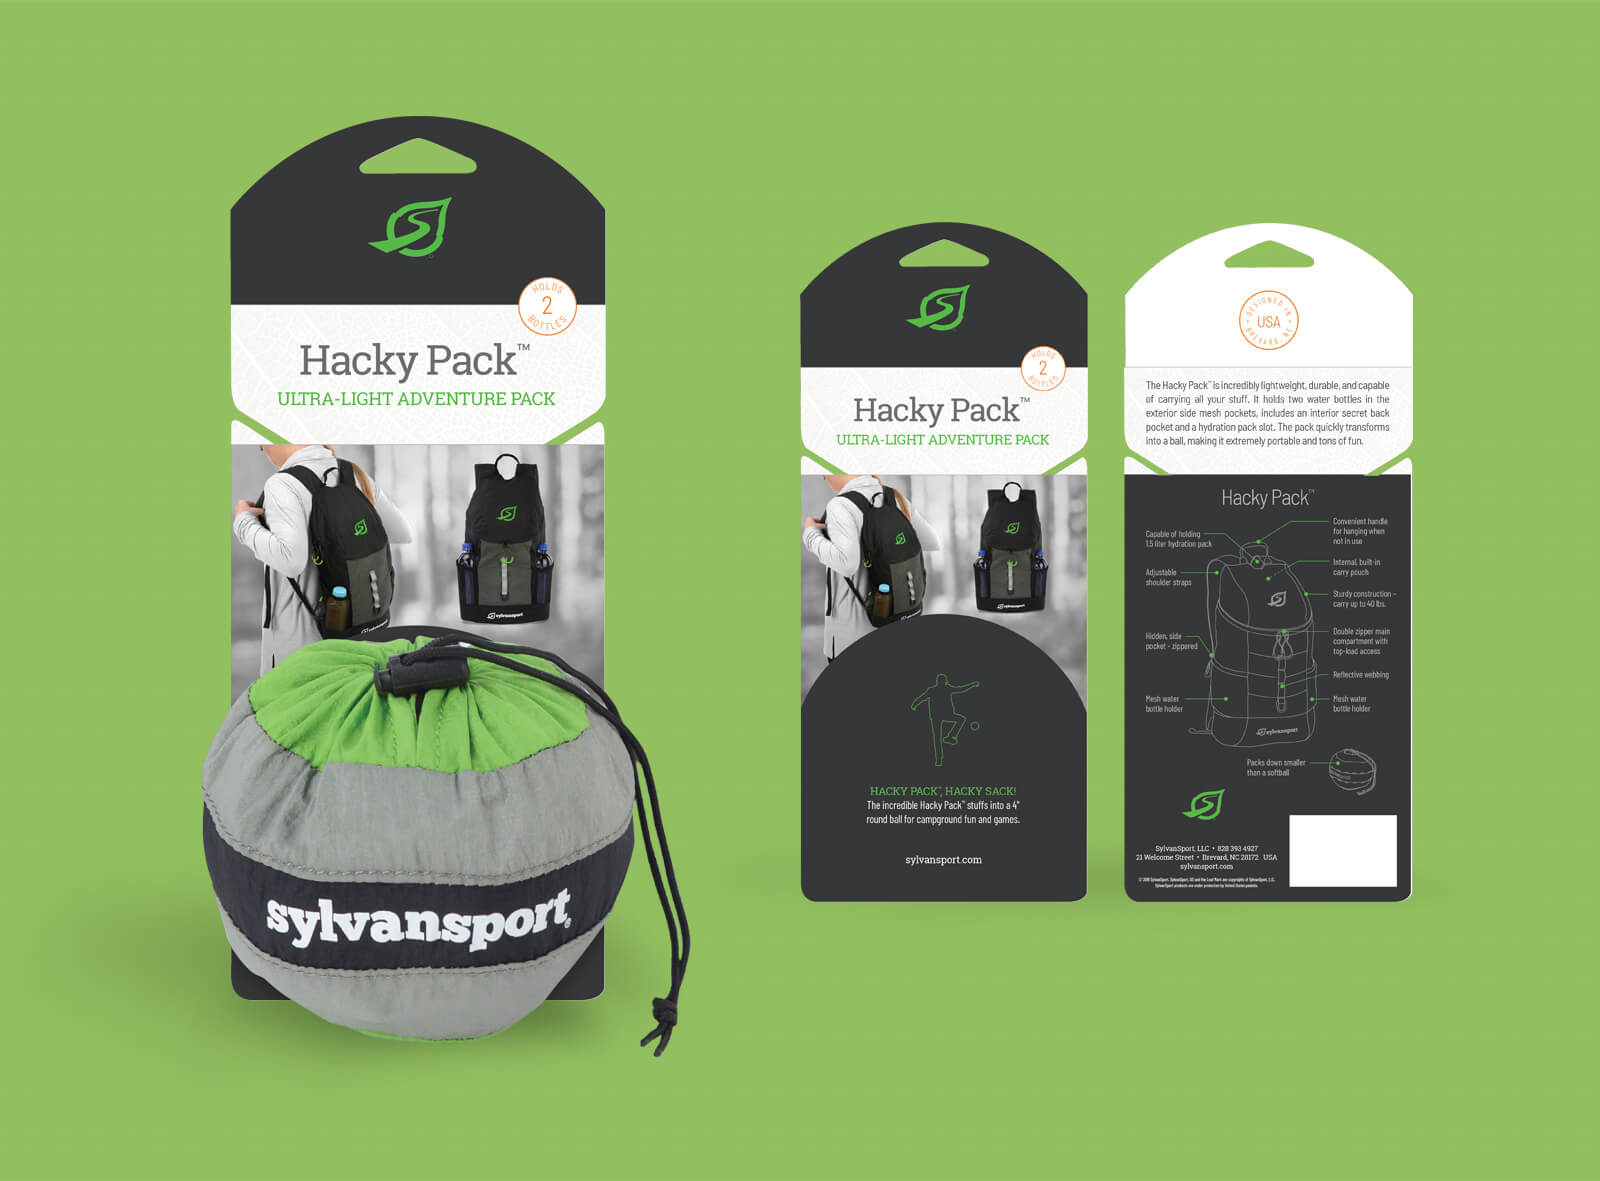 Sylvan Sport packaging box for Hacky Pack backpack, against green background. Shows features and technical drawing of product.